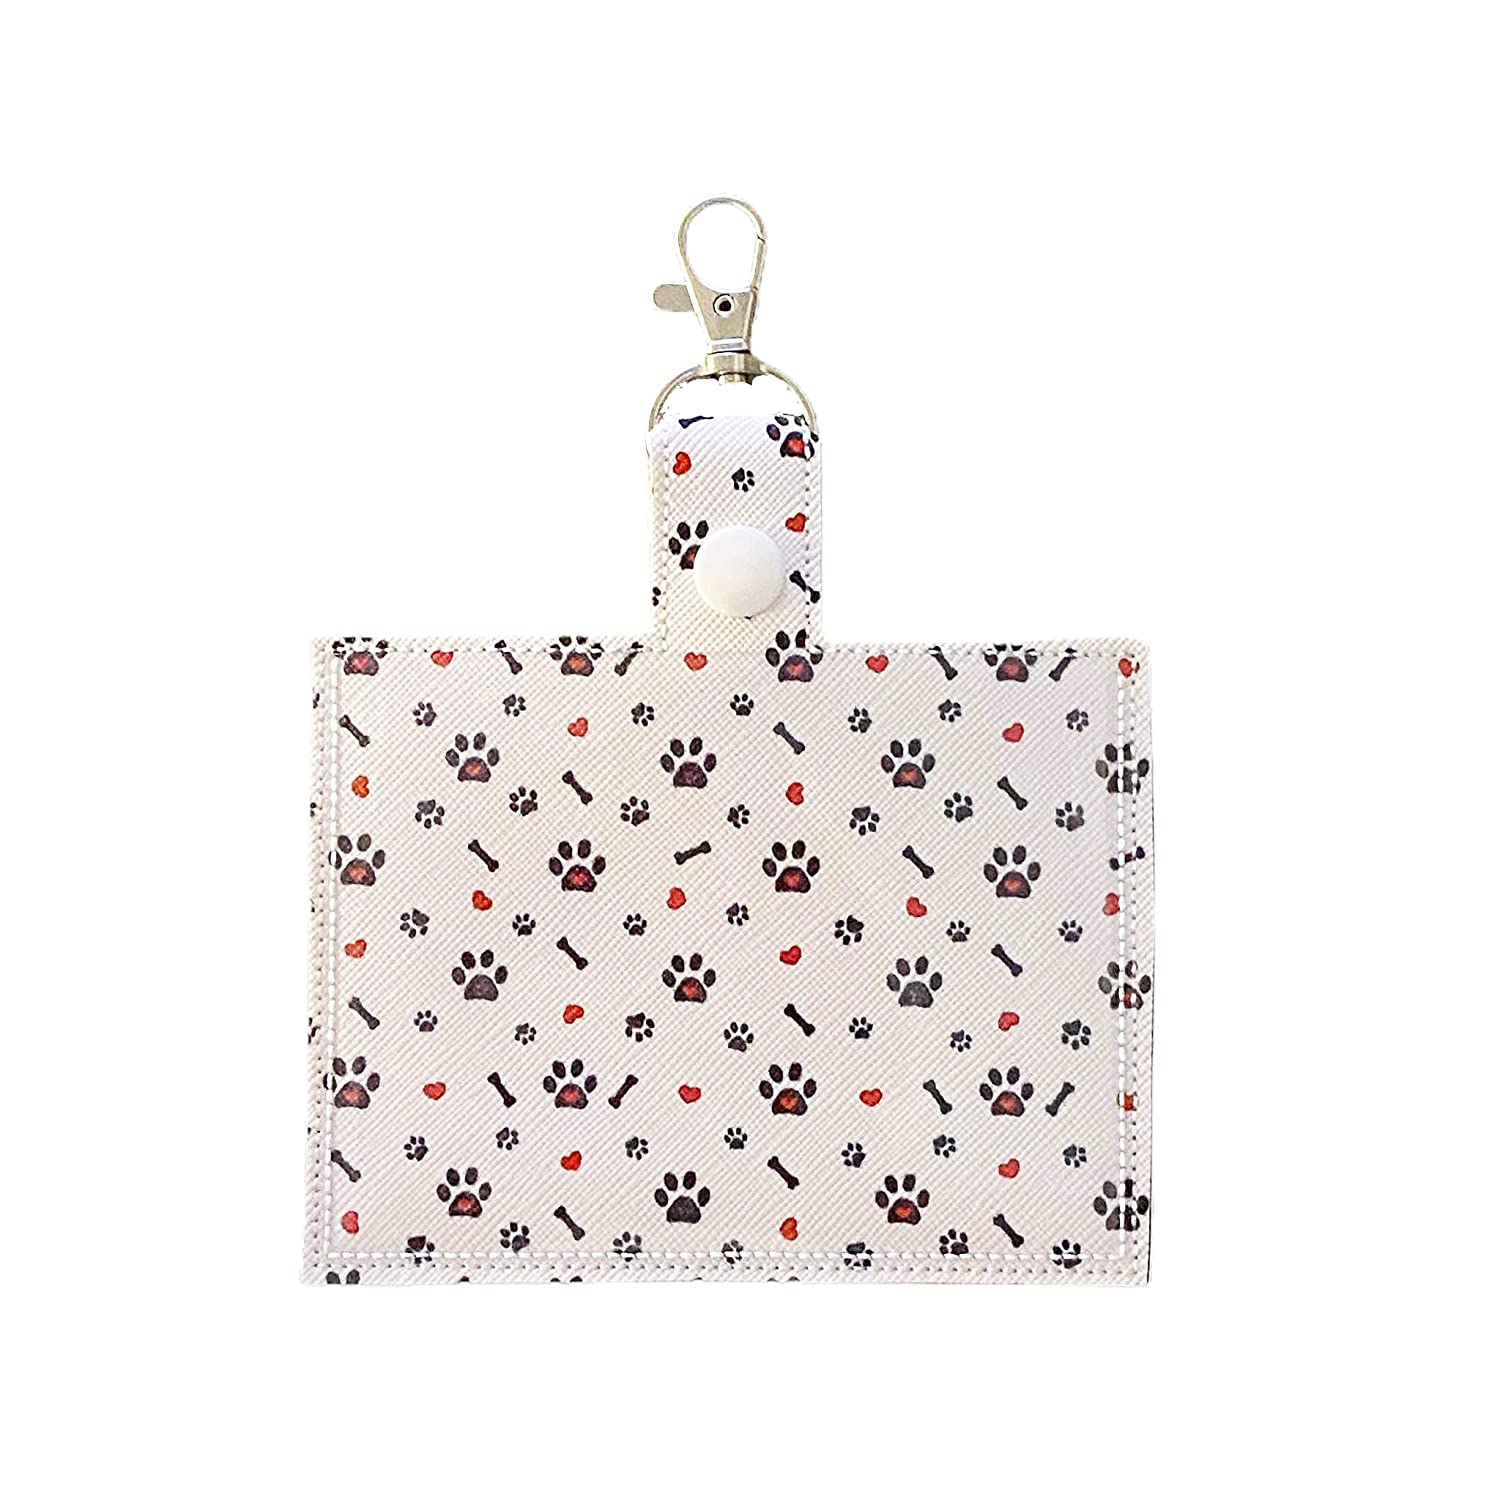 Patterned Vaccine Card Holder Keychain Bones 2021 new with And New popularity Clip Paws